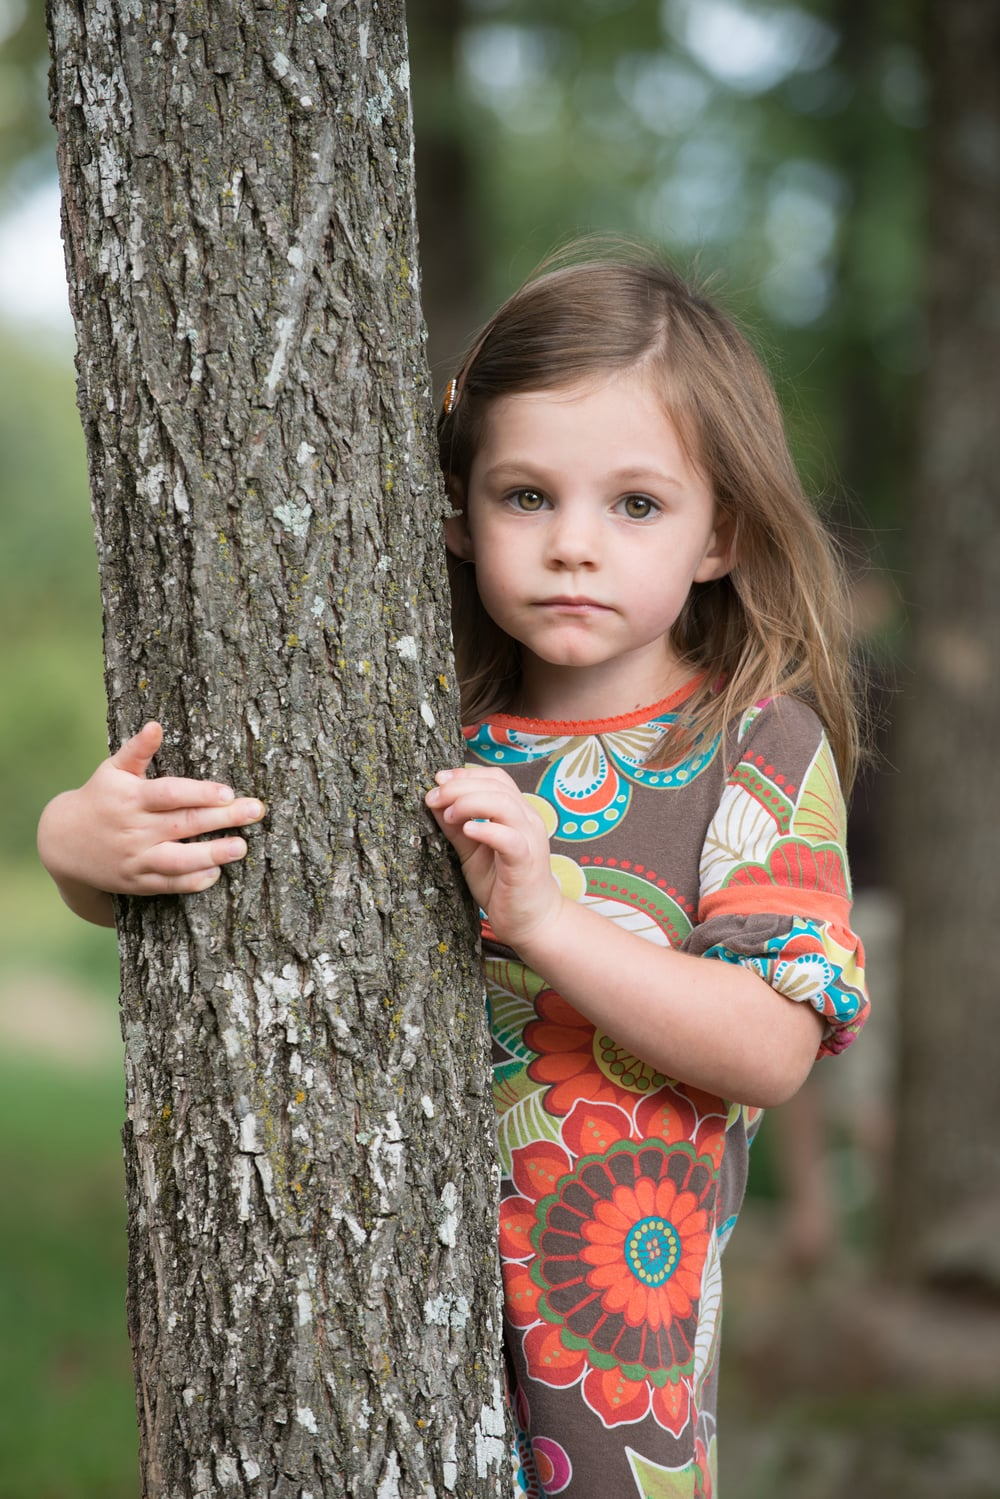 Little girl hiding behind tree